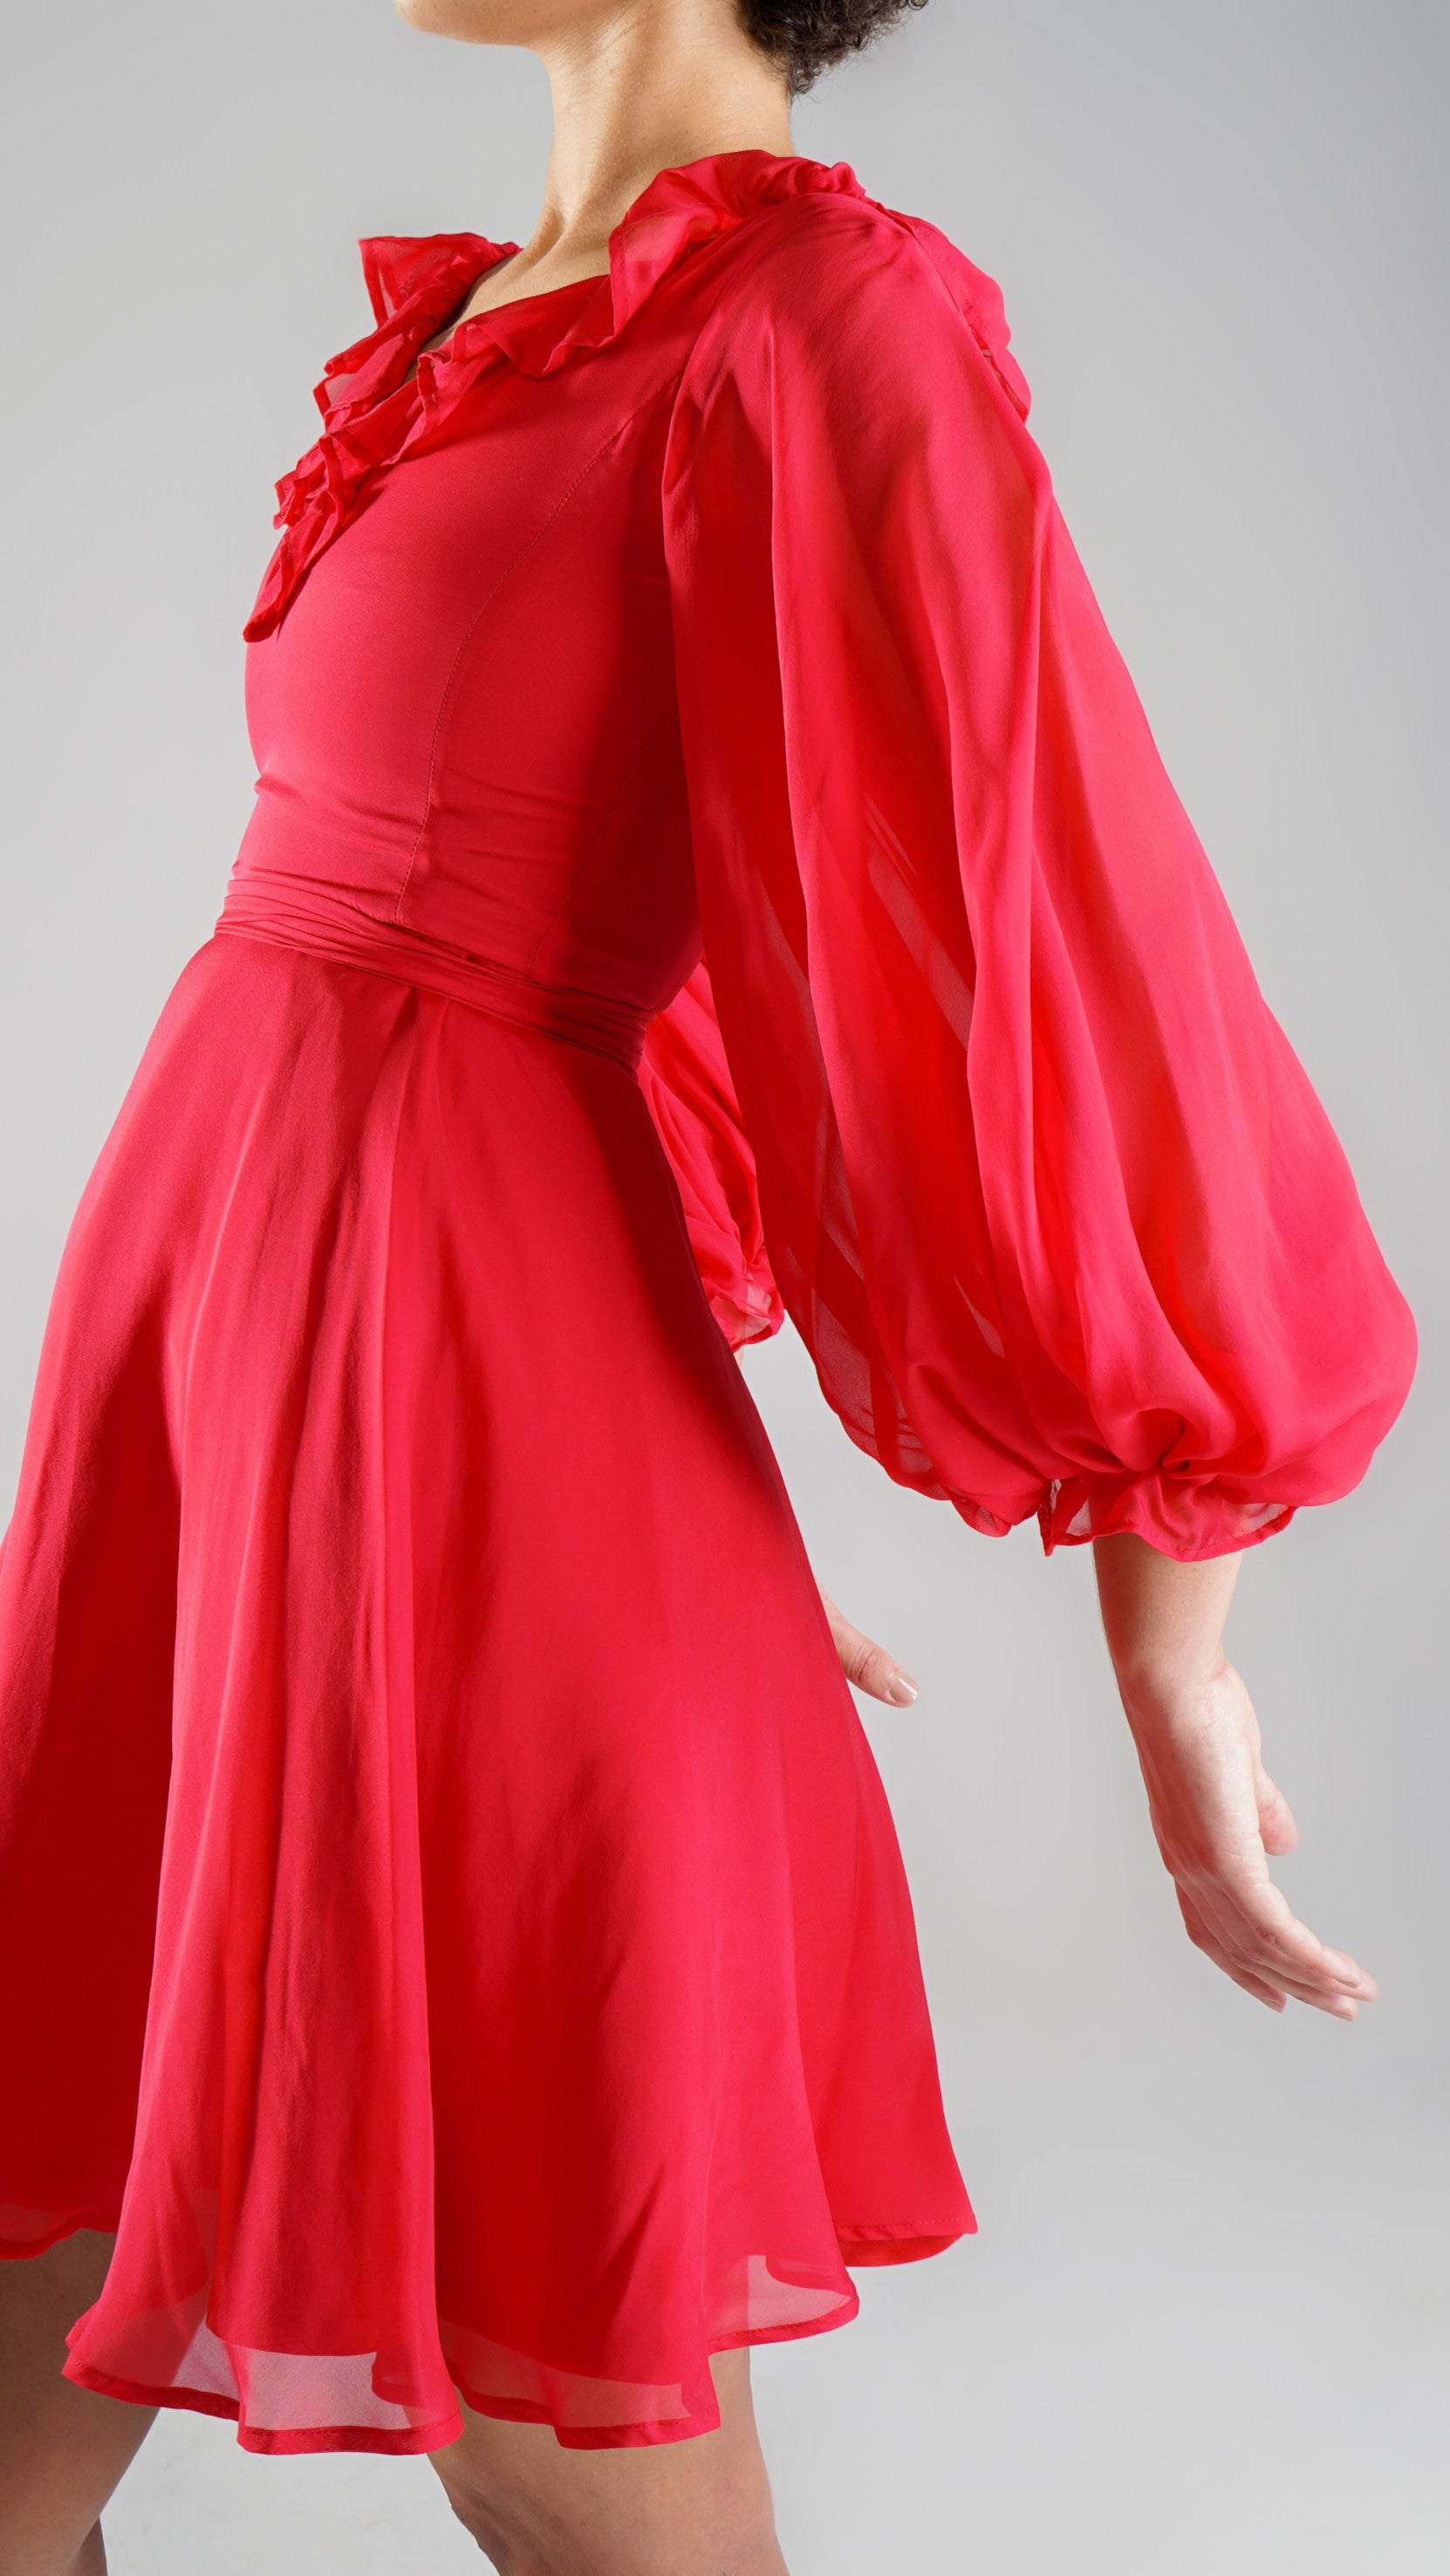 Elegant Resort Wear Red Dress with Balloon Sleeves for Day Out or Party for Spring